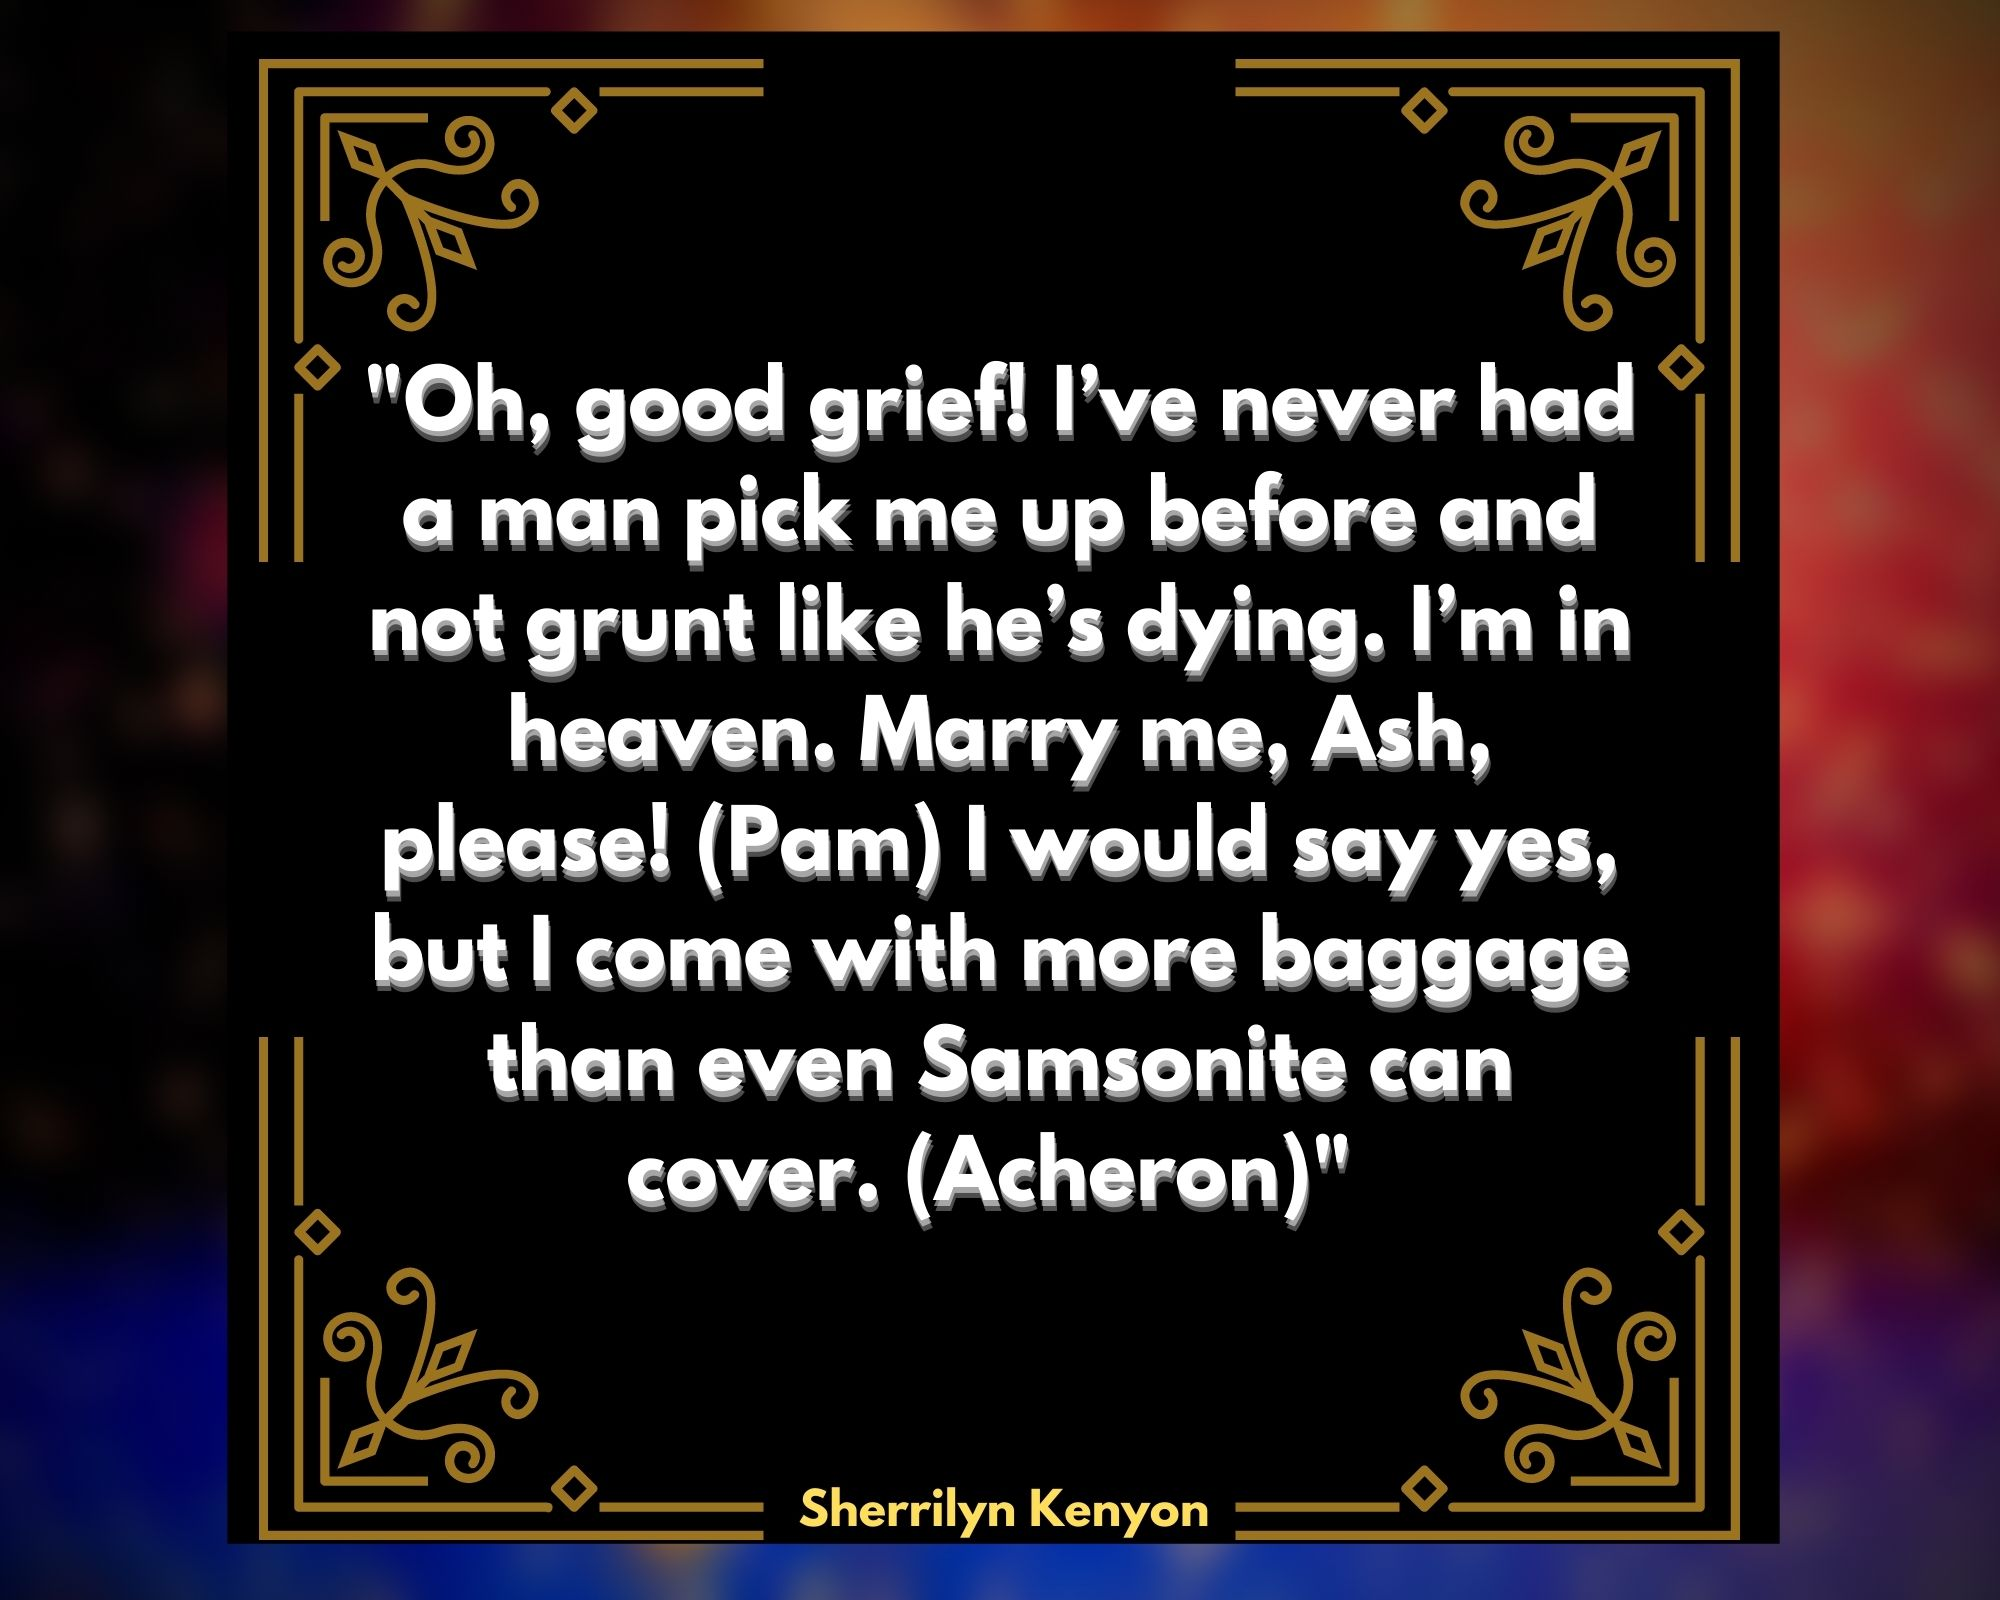 Quotes by Sherrilyn Kenyon